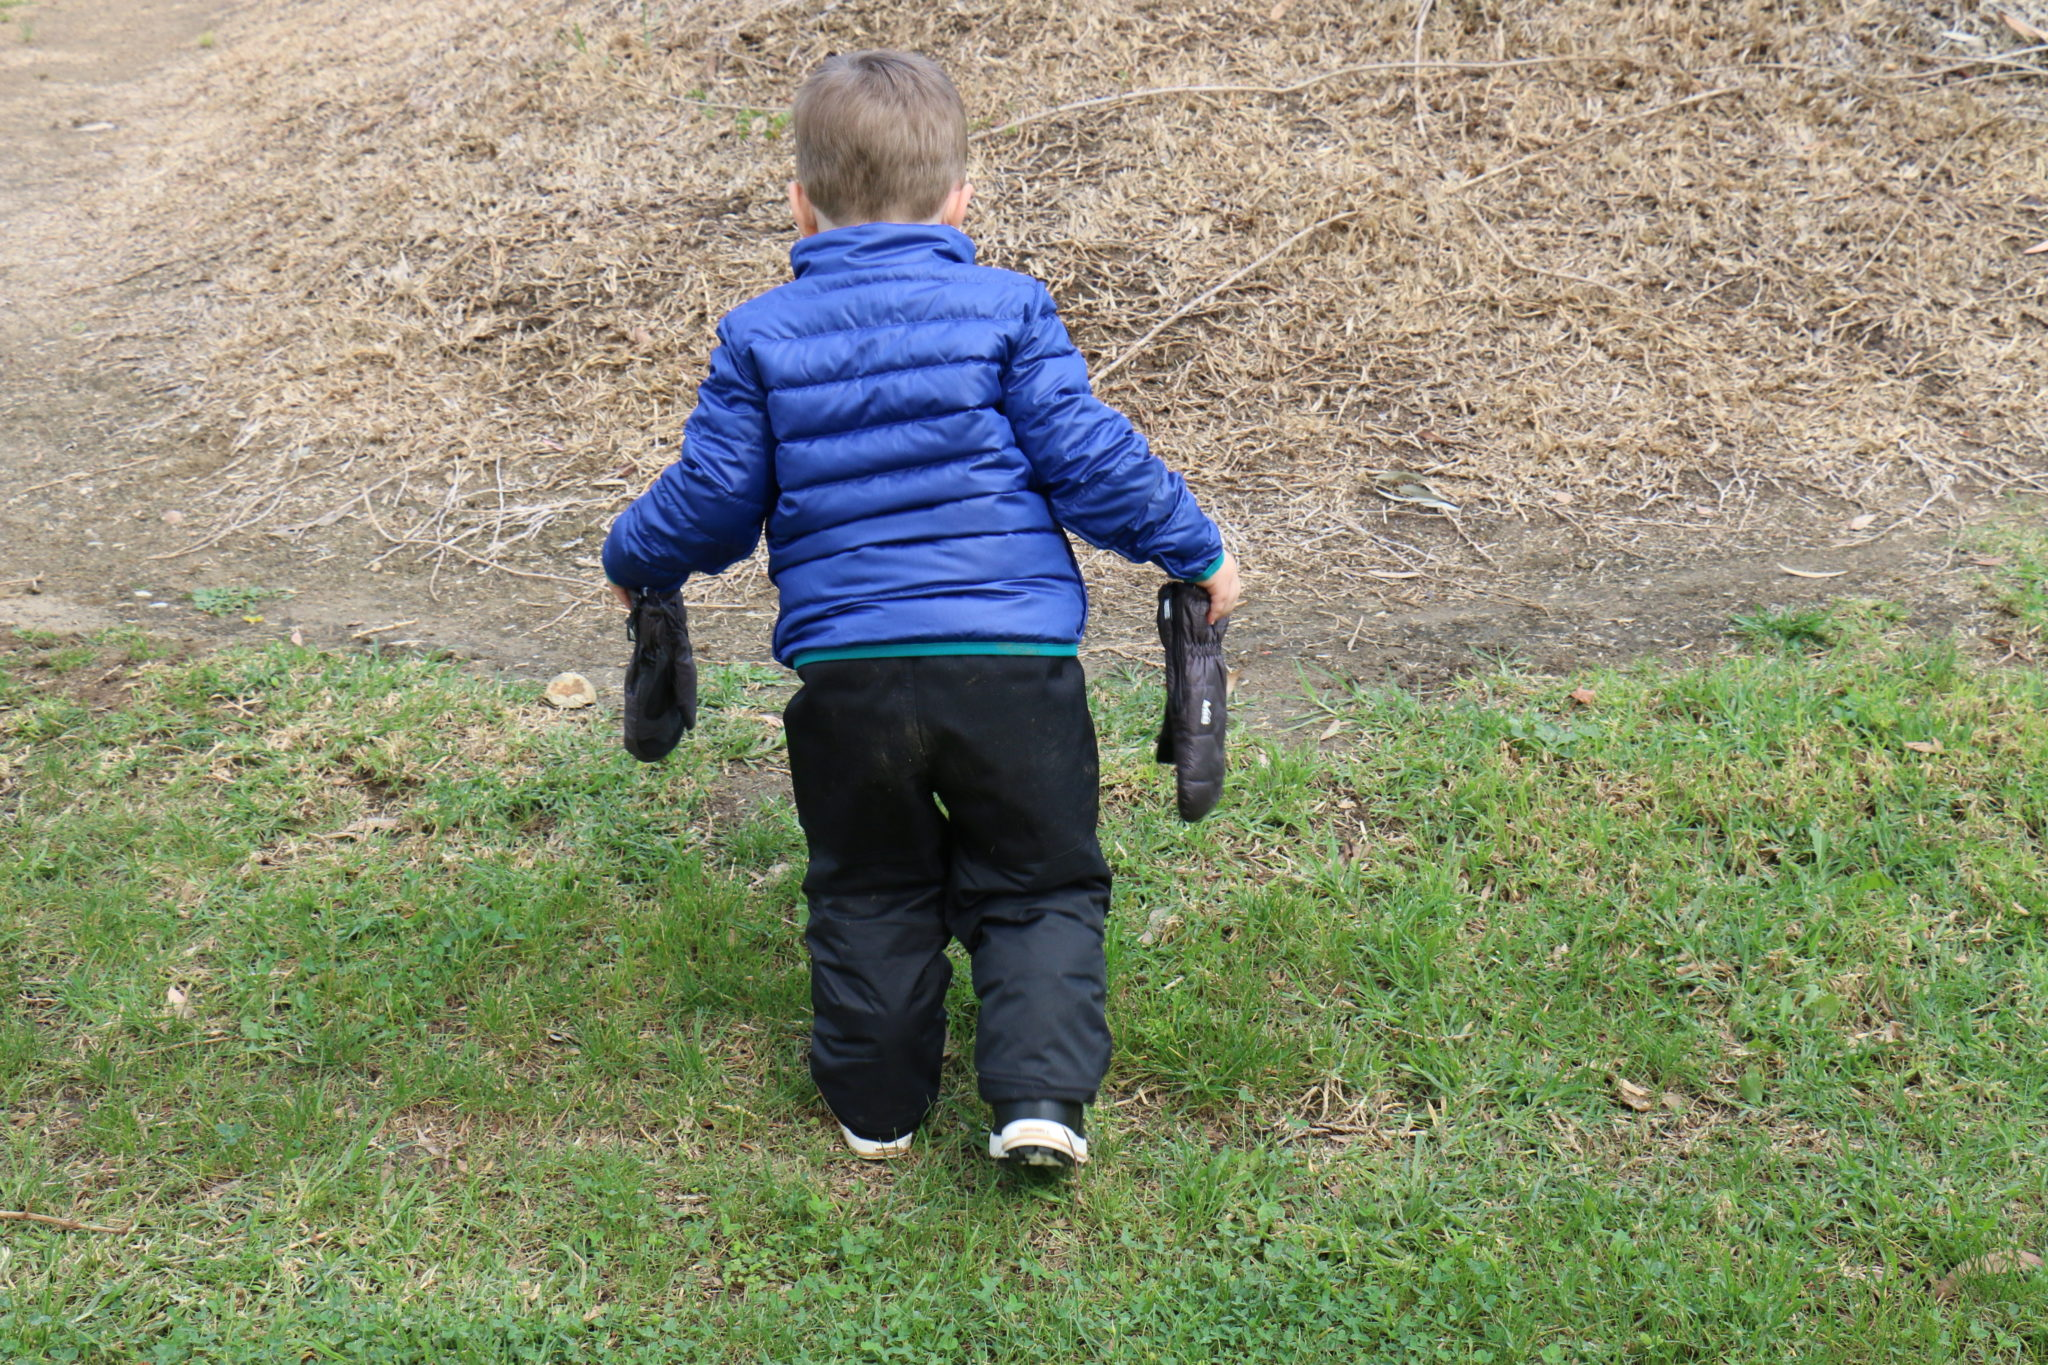 Hiking Toddler waiting for snow!